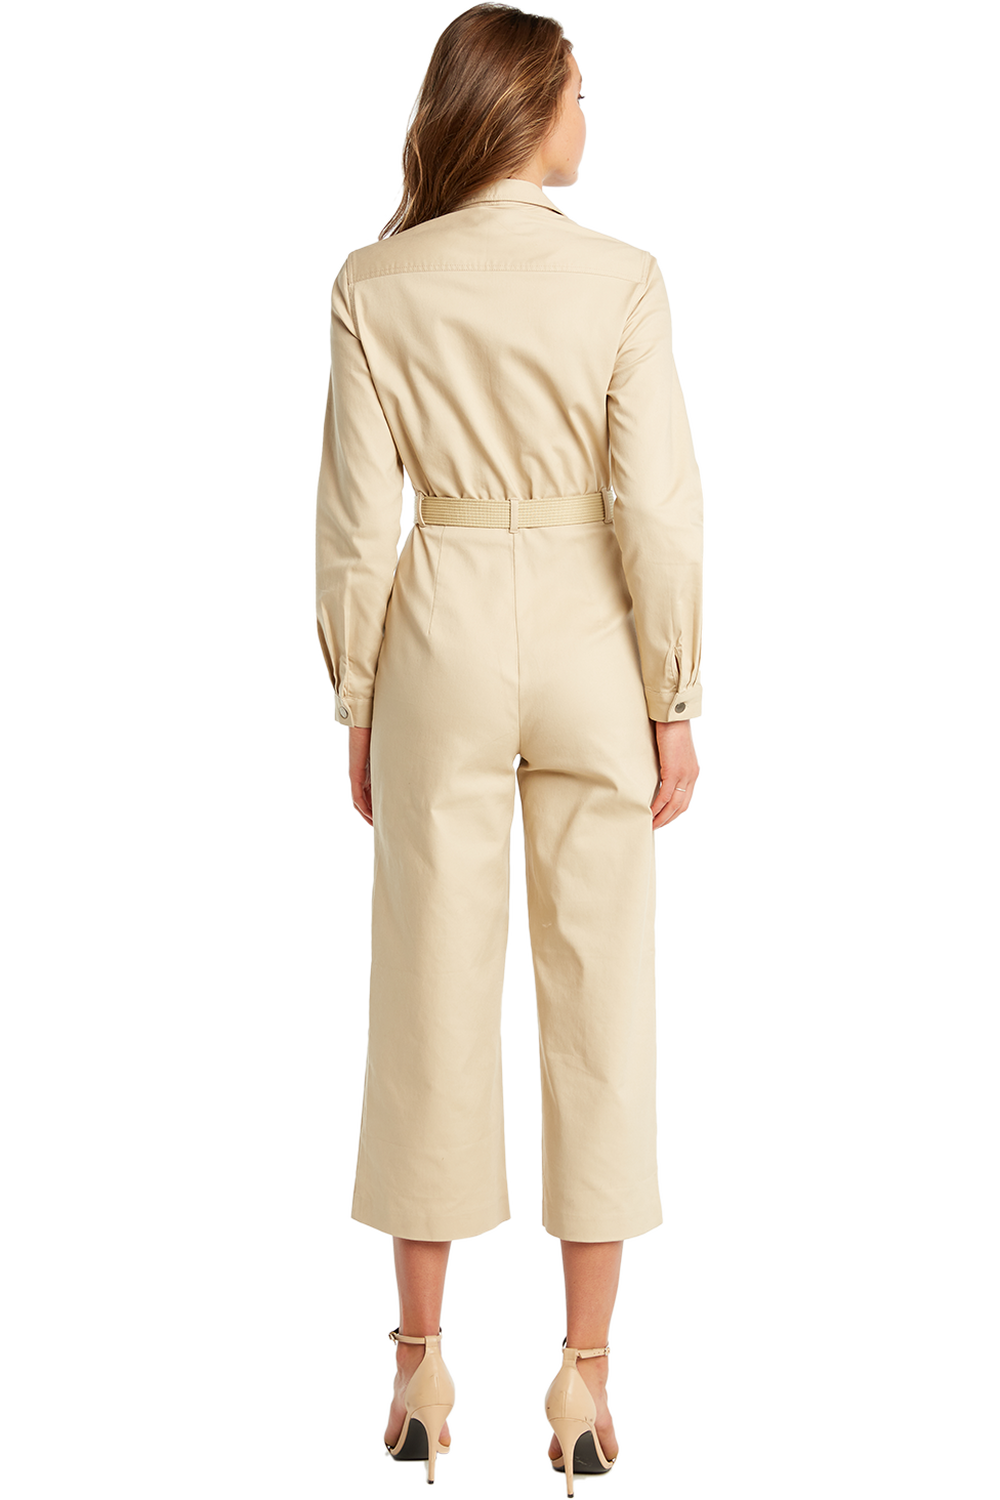 ARIANA WIDELEG JUMPSUIT in colour MOONLIGHT